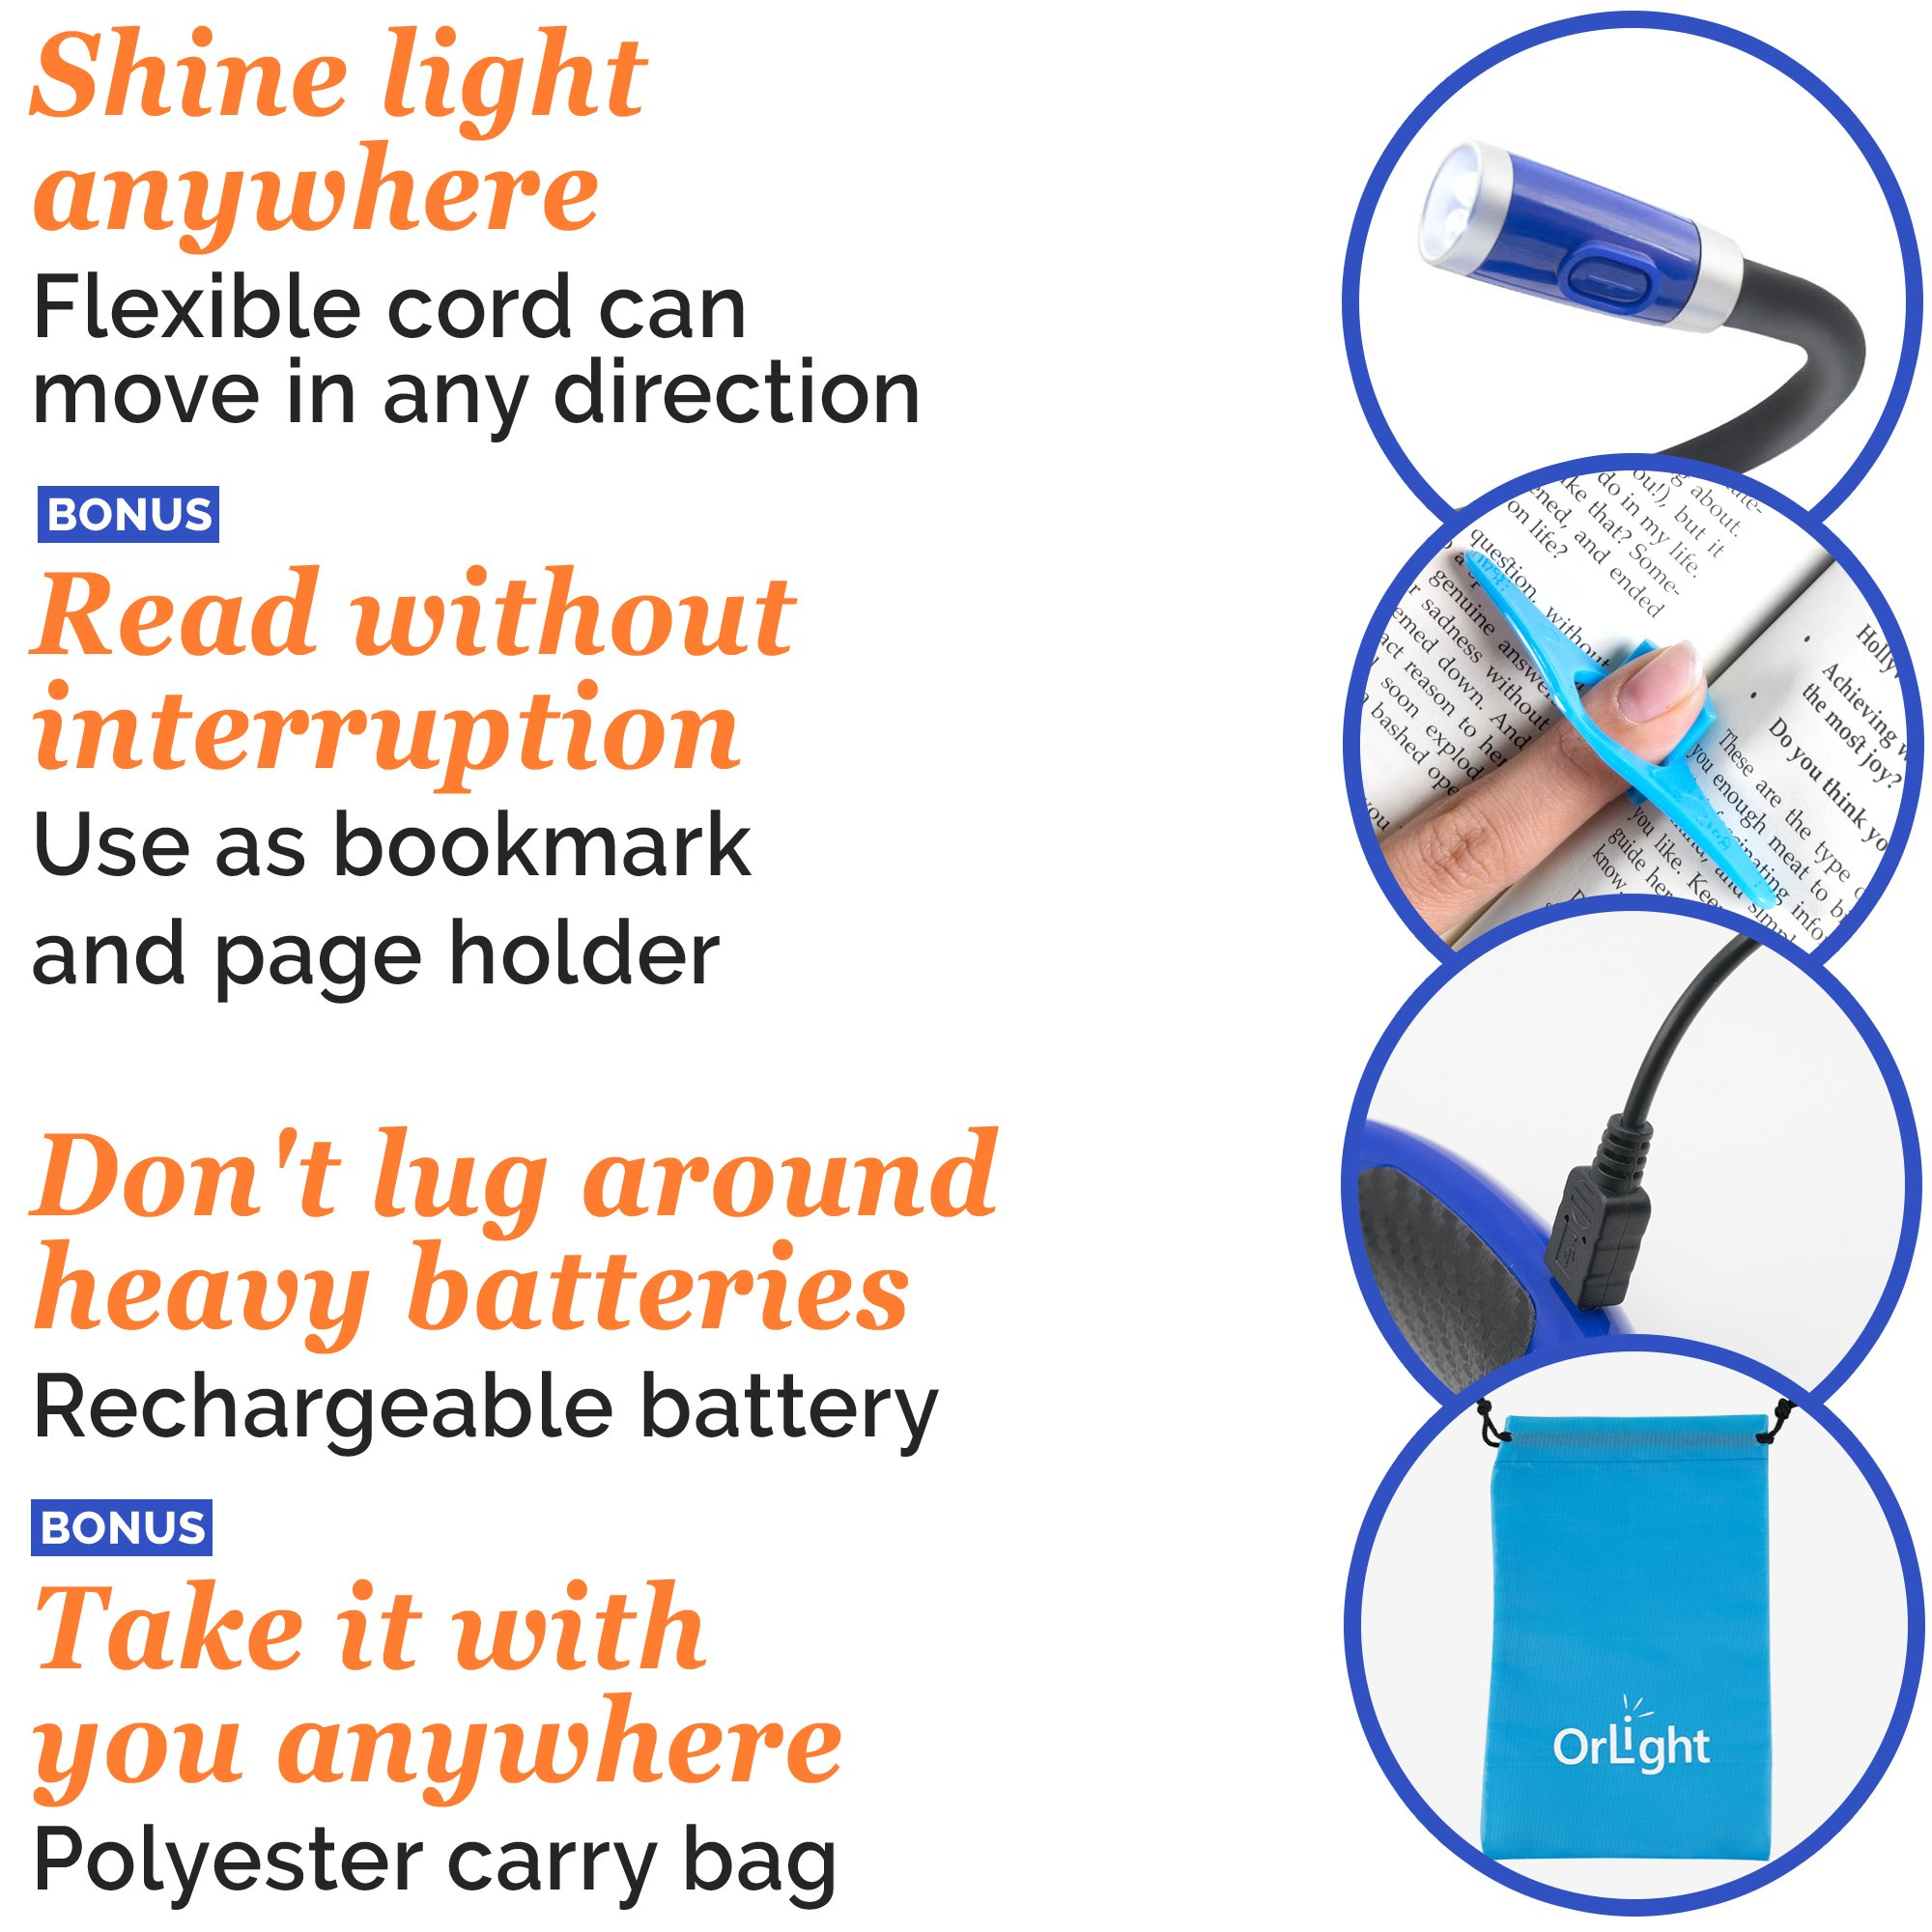 hug light pro led neck light rechargeable book light for reading